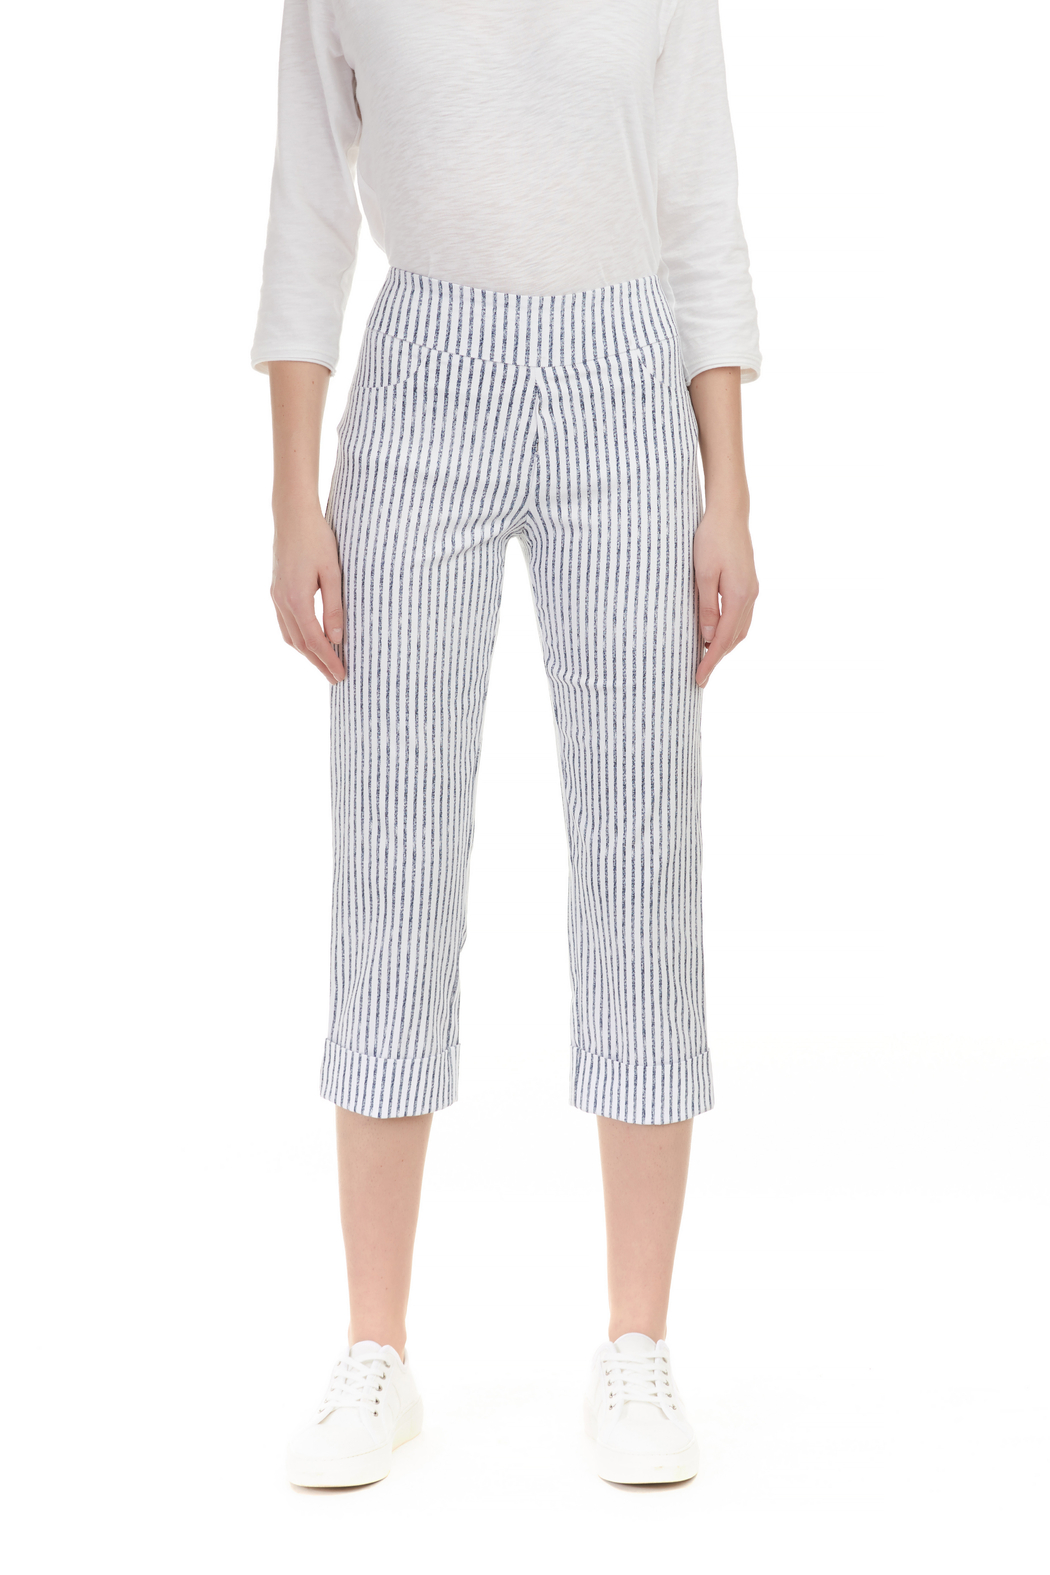 Charlie B Stripe Stretch Pant - Front Cropped Image